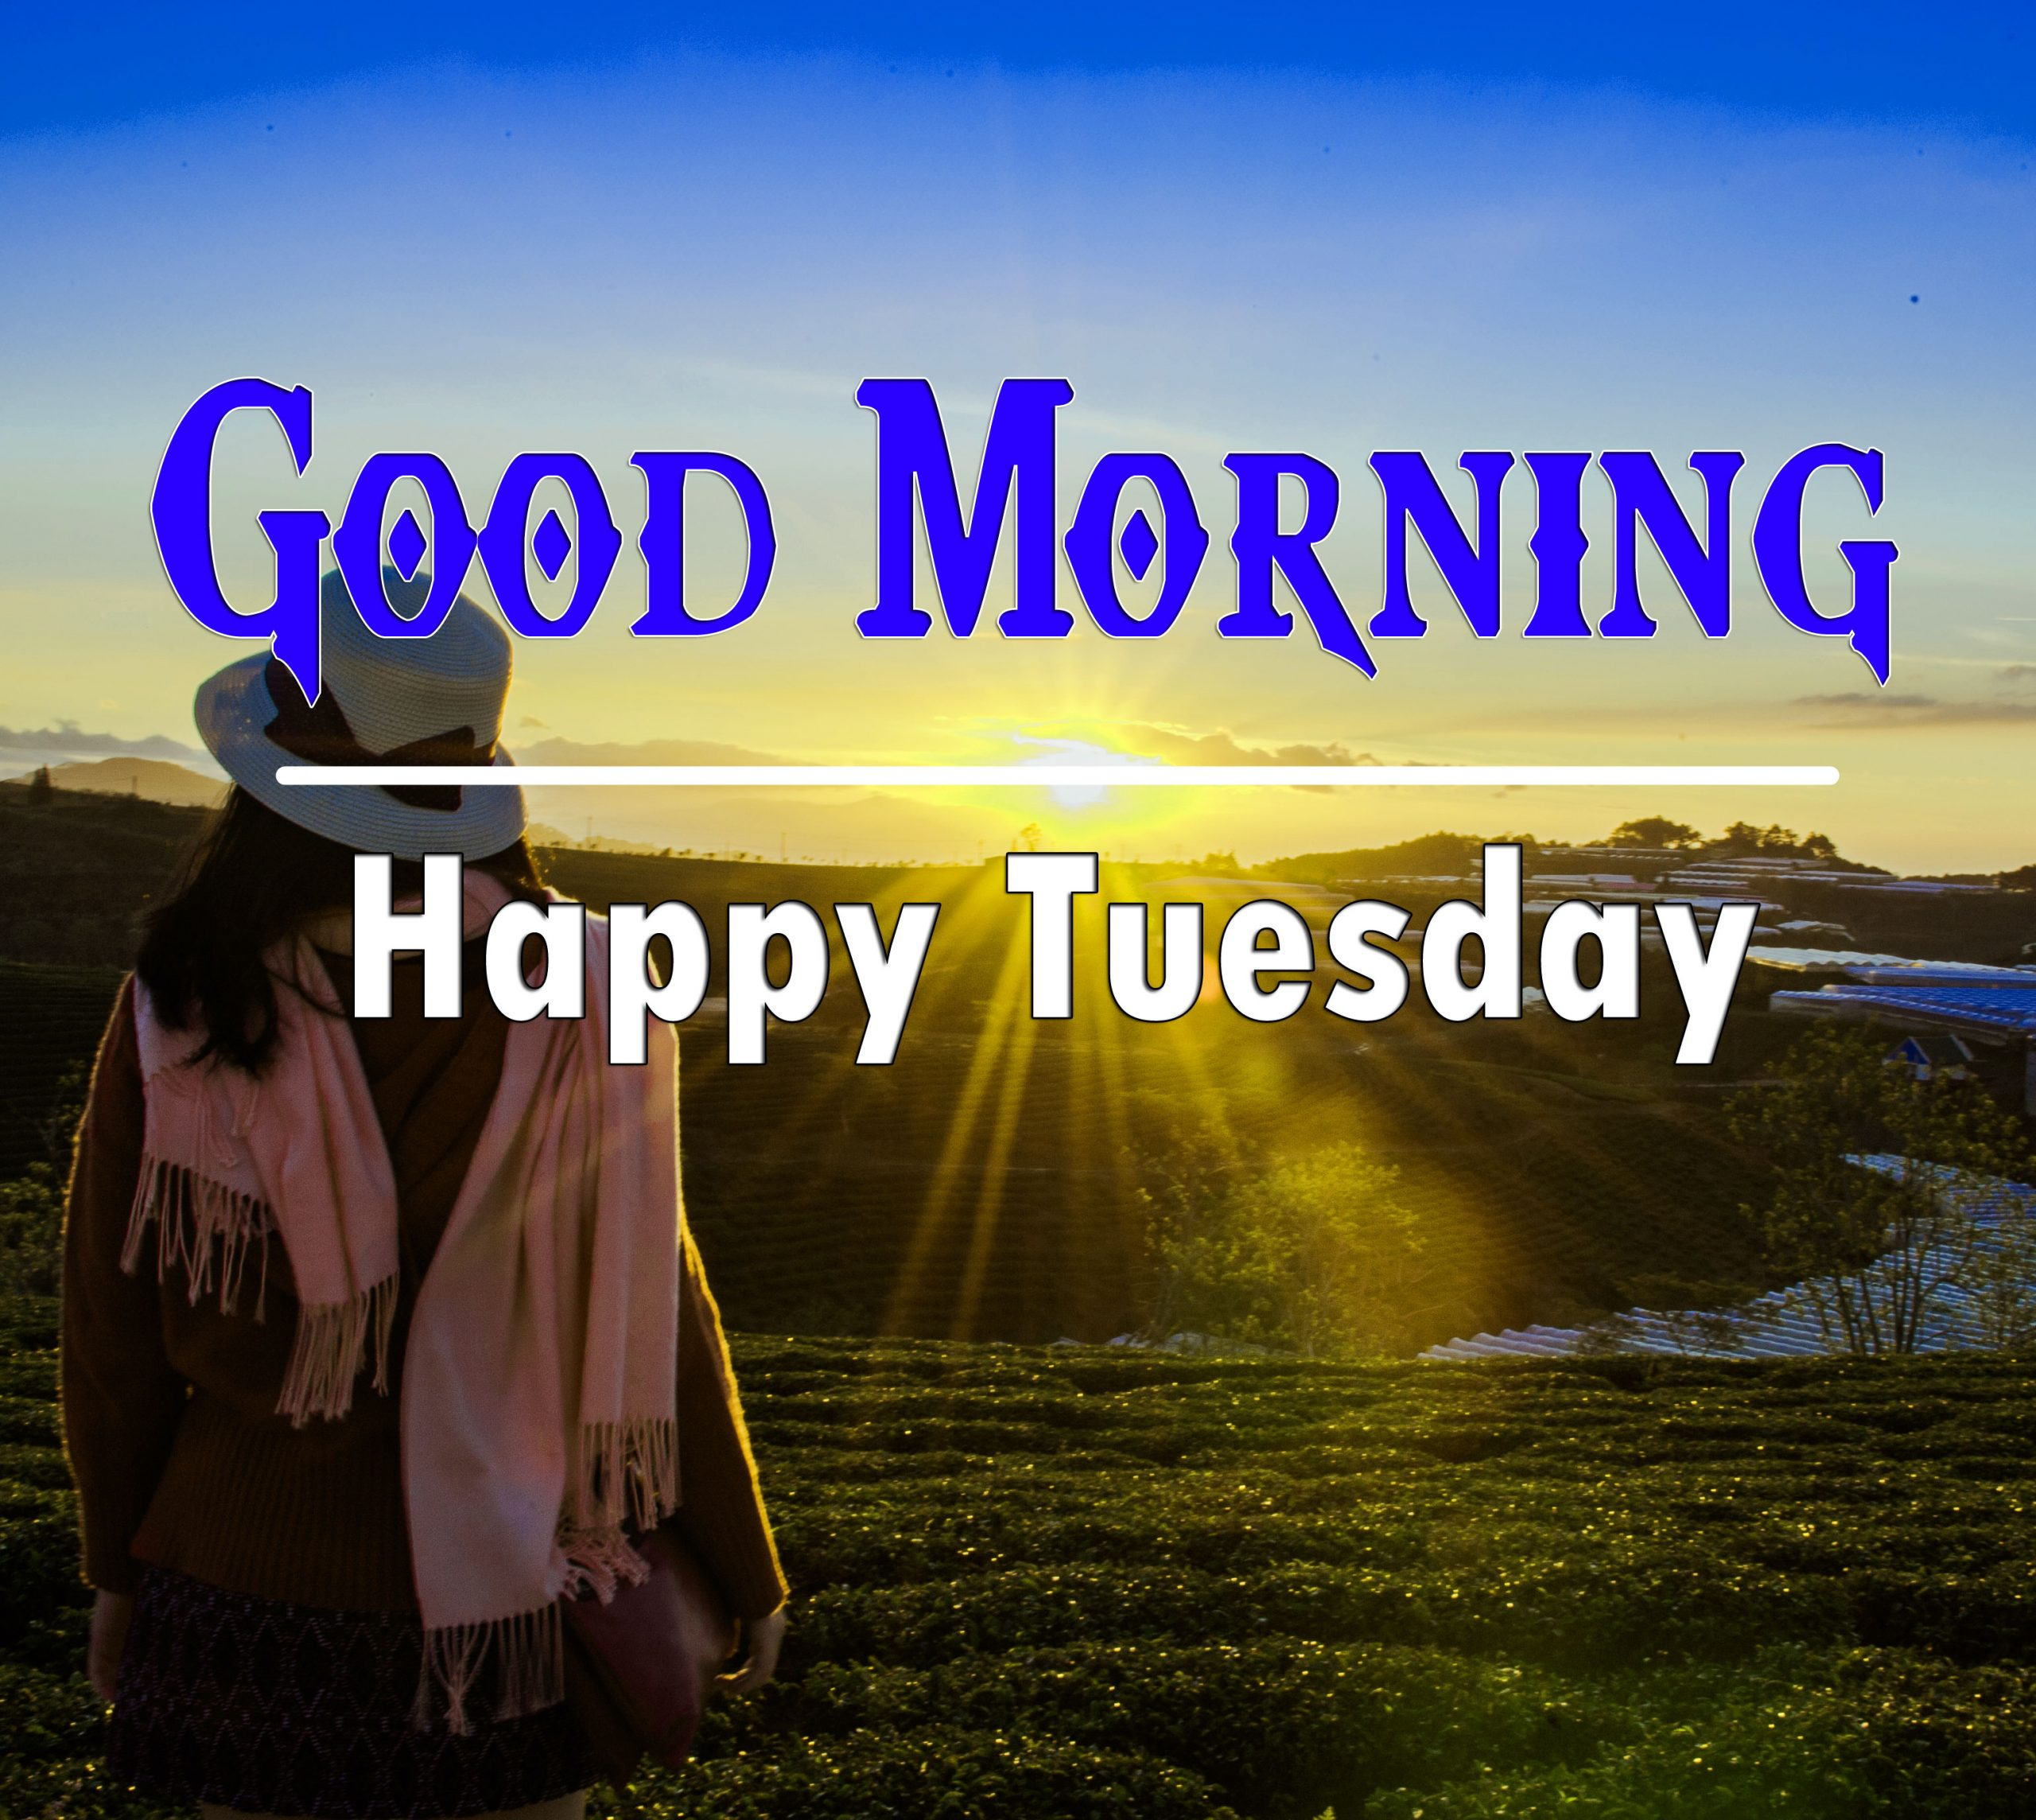 Best Quality Tuesday Good morning Images 2